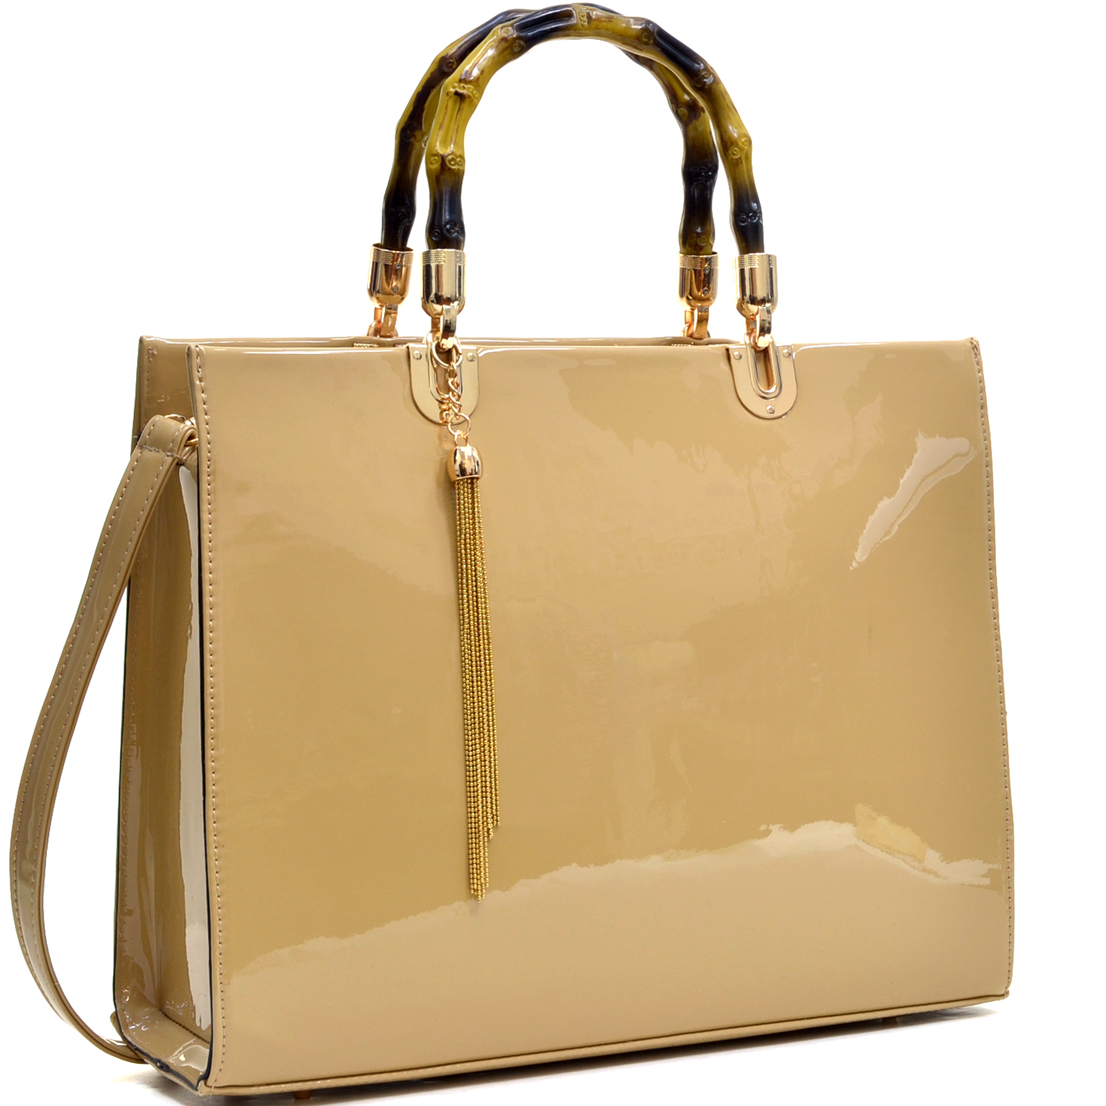 Wooden Handle Patent Leather Satchel Bag